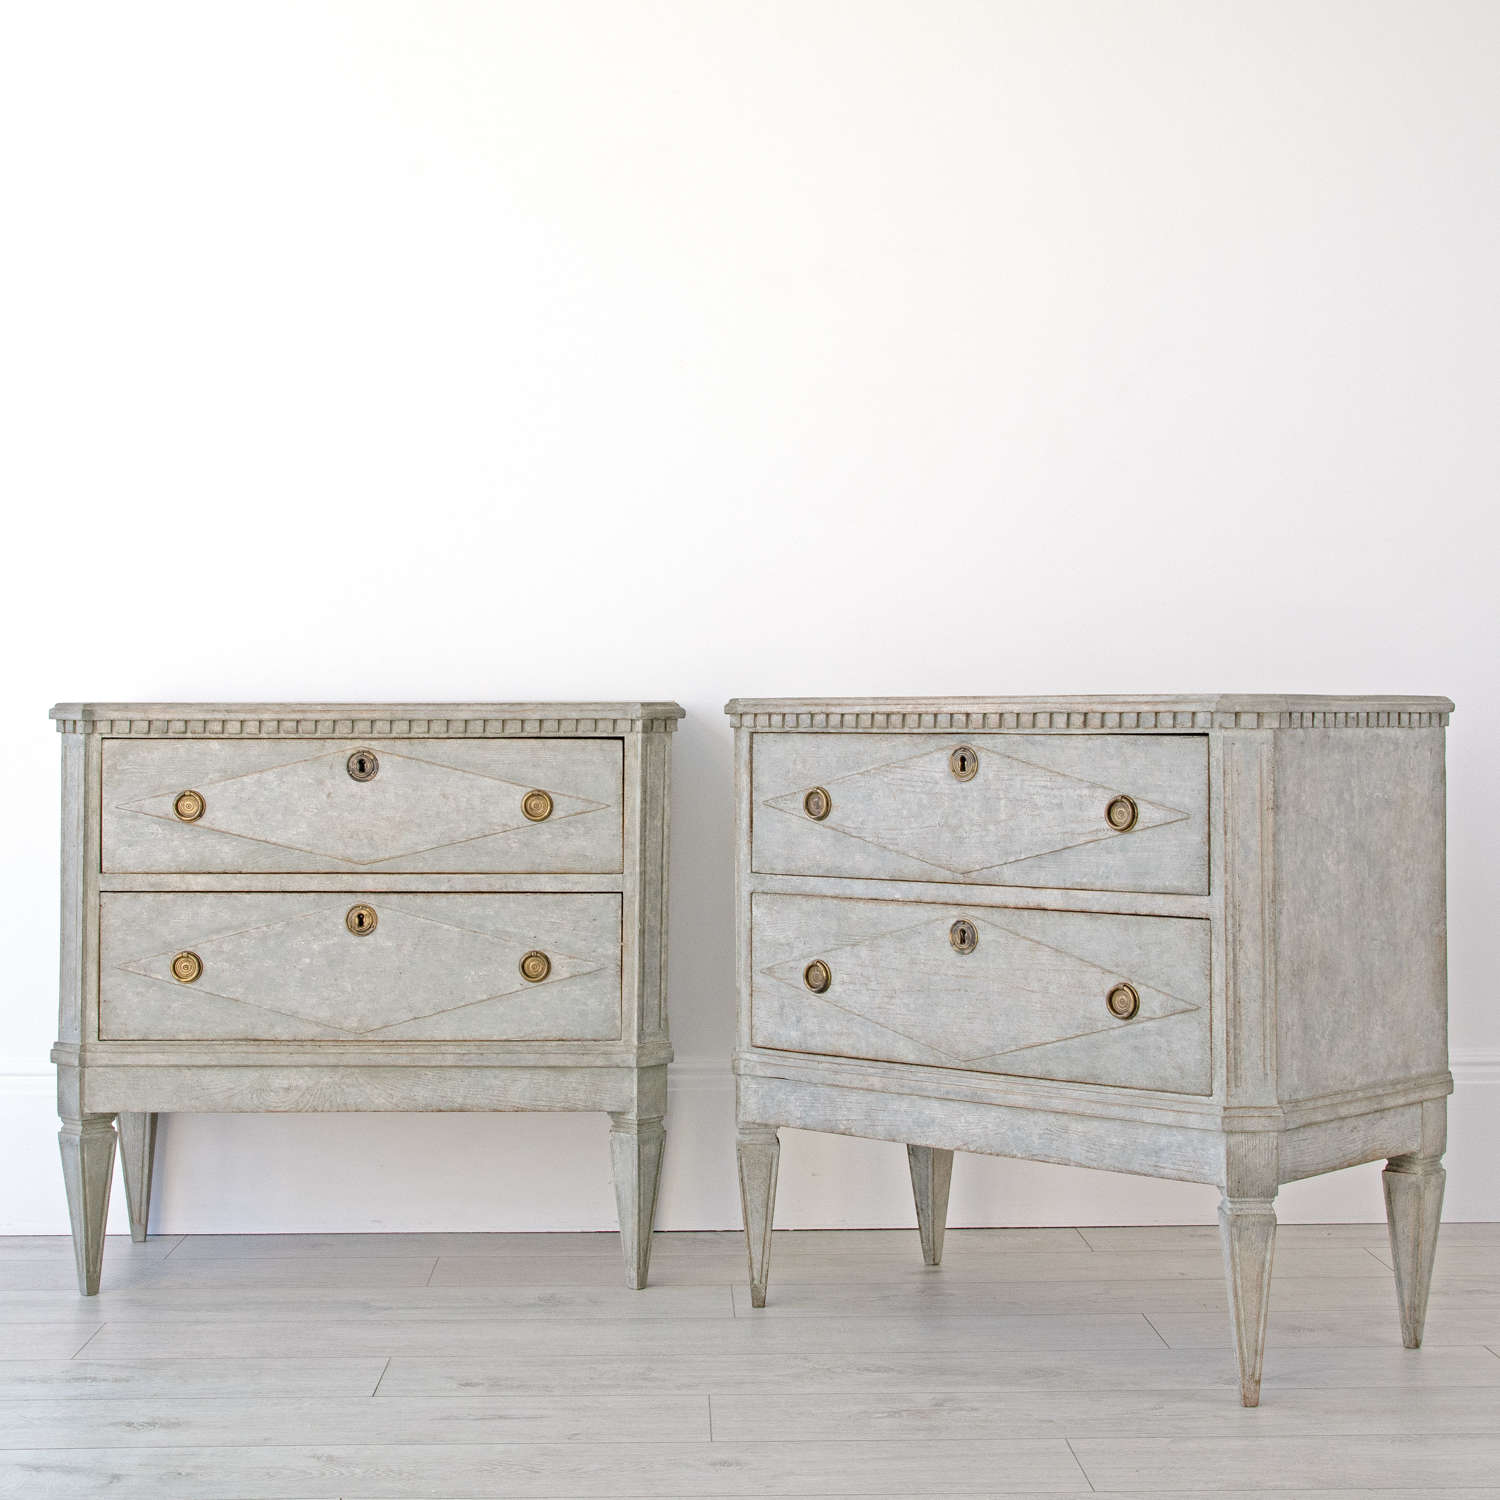 PAIR OF GUSTAVIAN STYLE BEDSIDE CHESTS